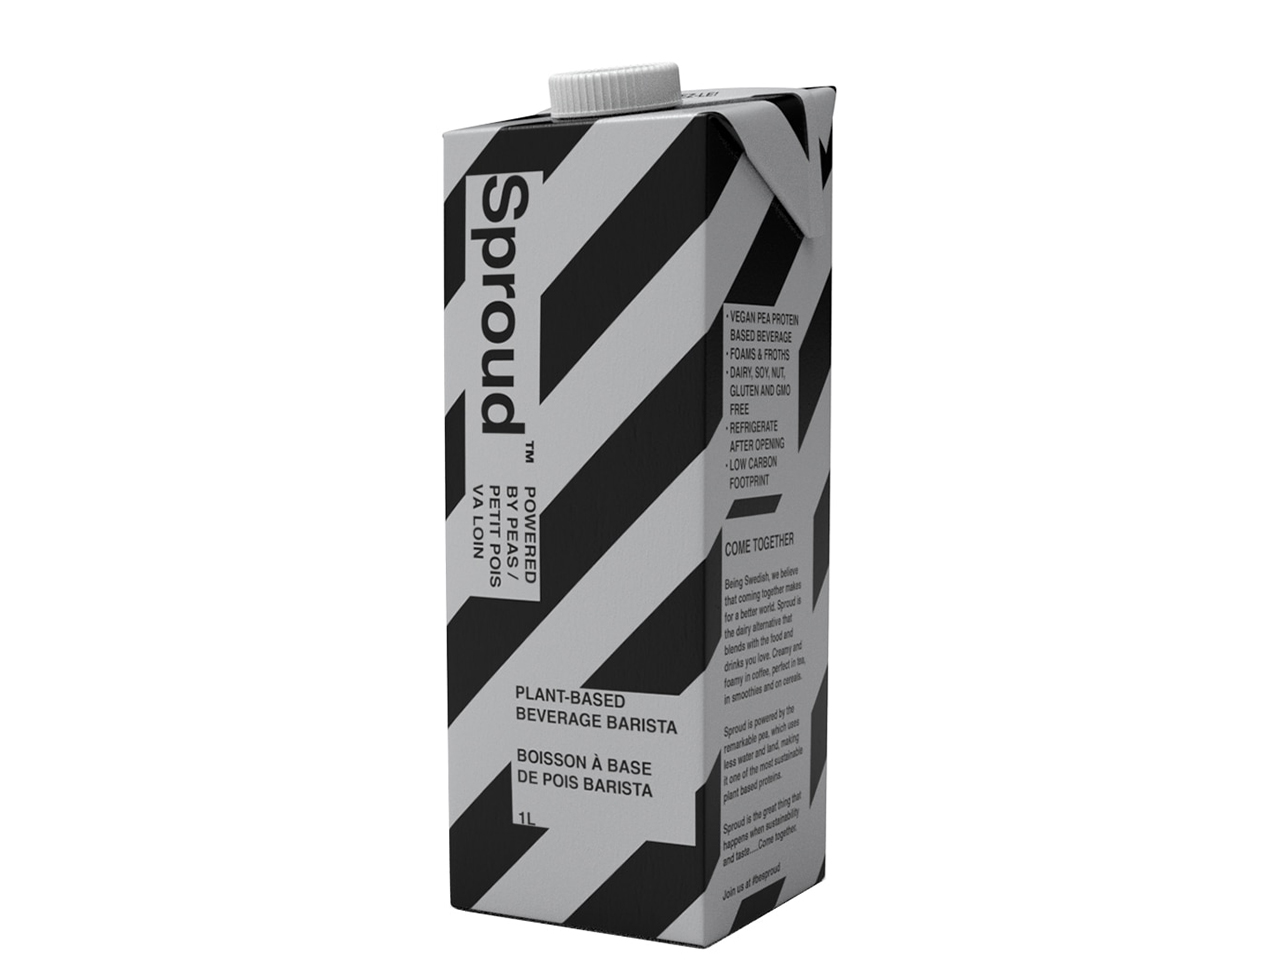 A carton of Sproud Barista pea milk